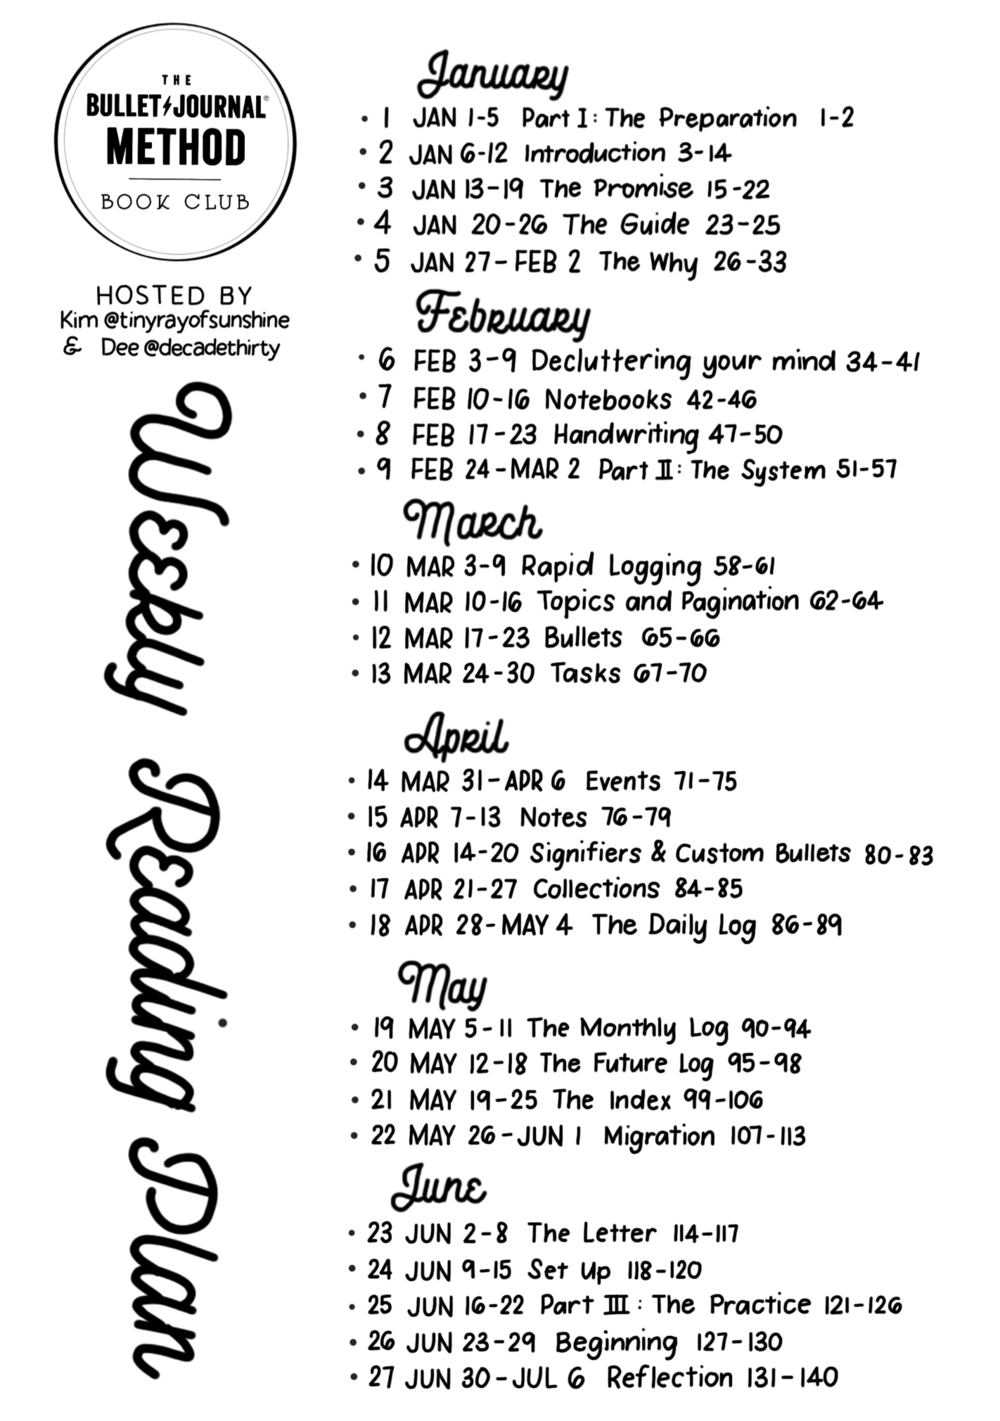 Weekly Reading Plan - Big 1 - Bigger letters make it easier to read and follow along! Planned by Kim and designed by Dee